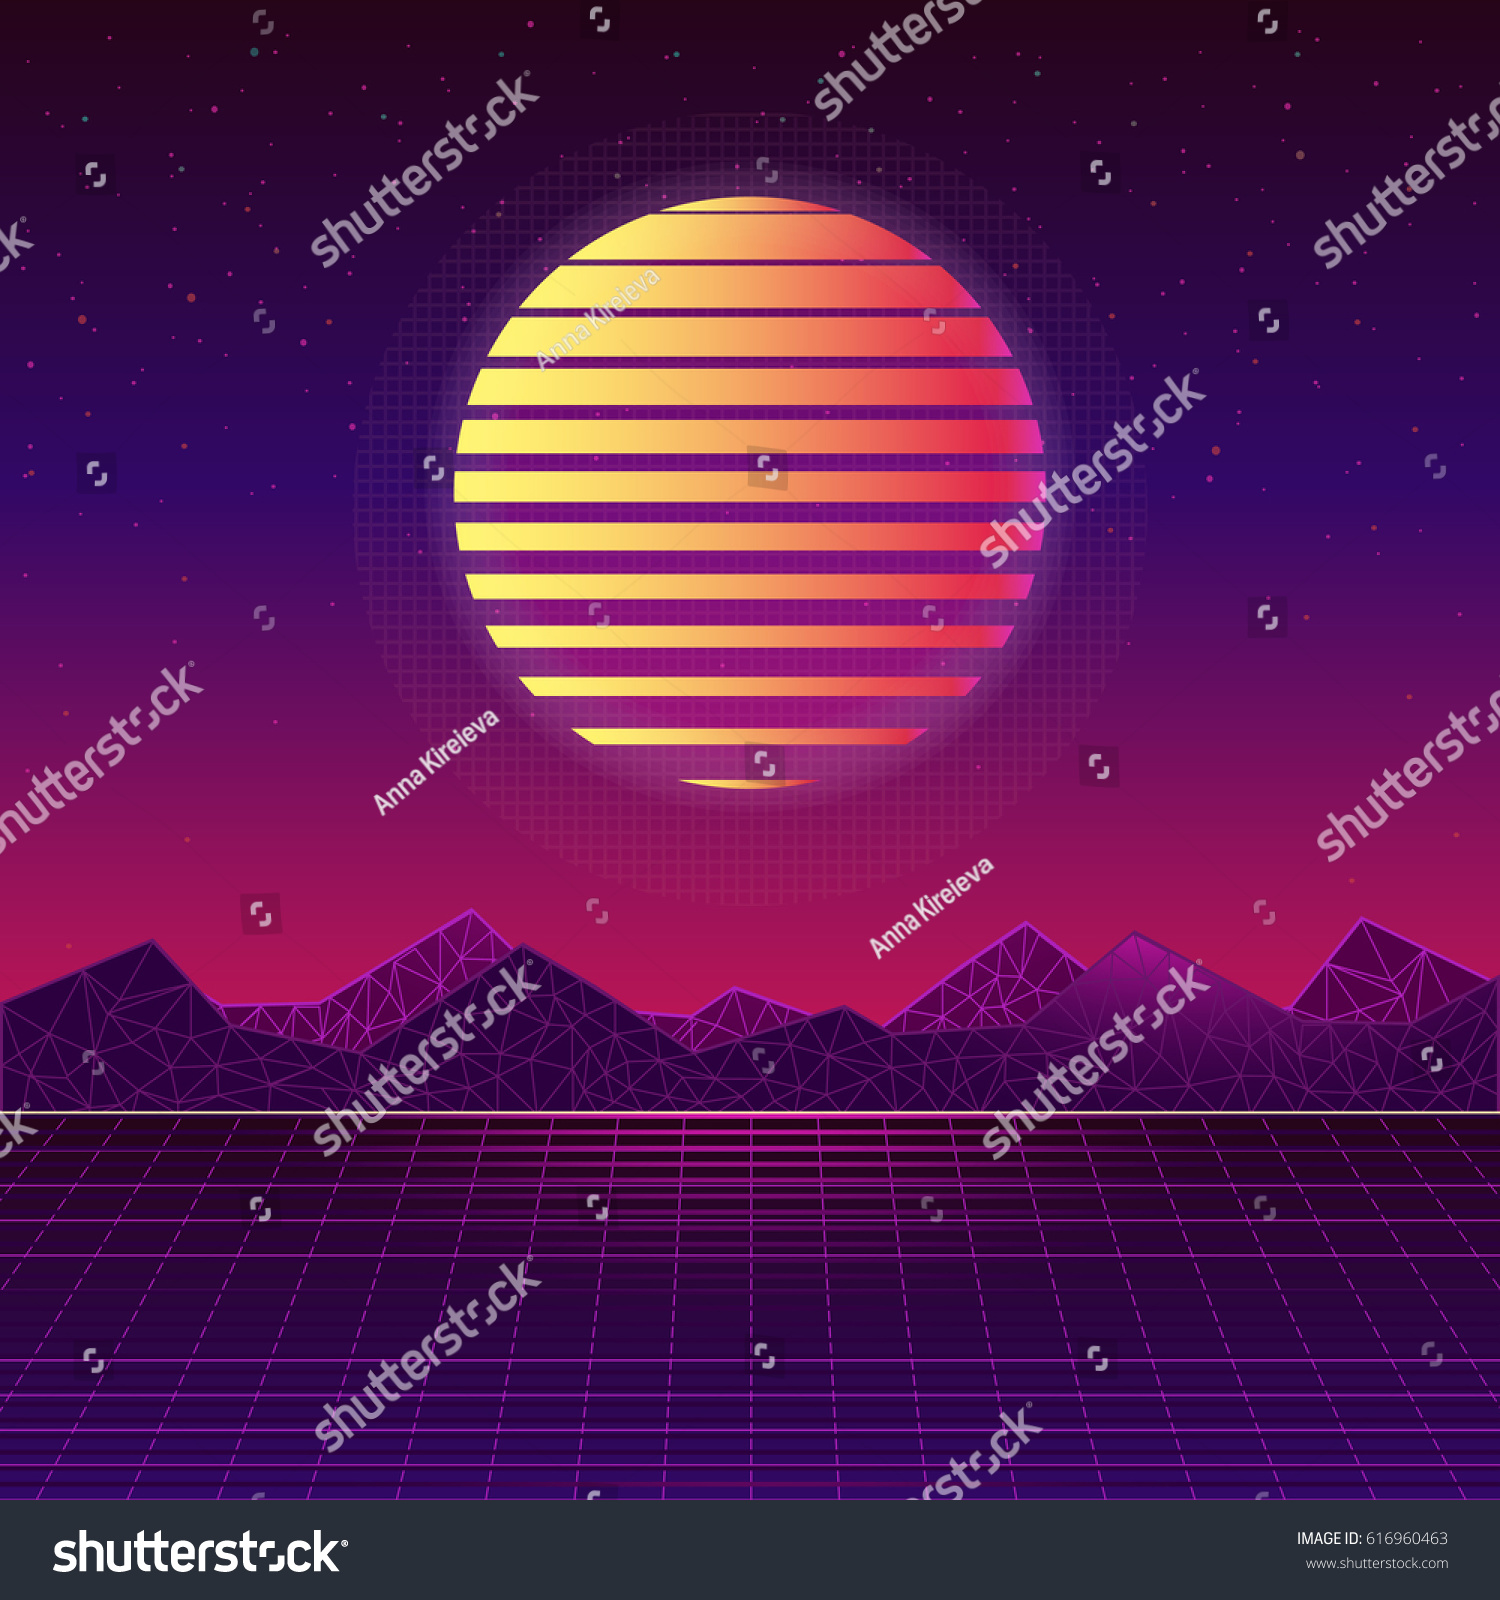 Vector backgrounds 80s style sun trendy stock vector - Space 80s wallpaper ...